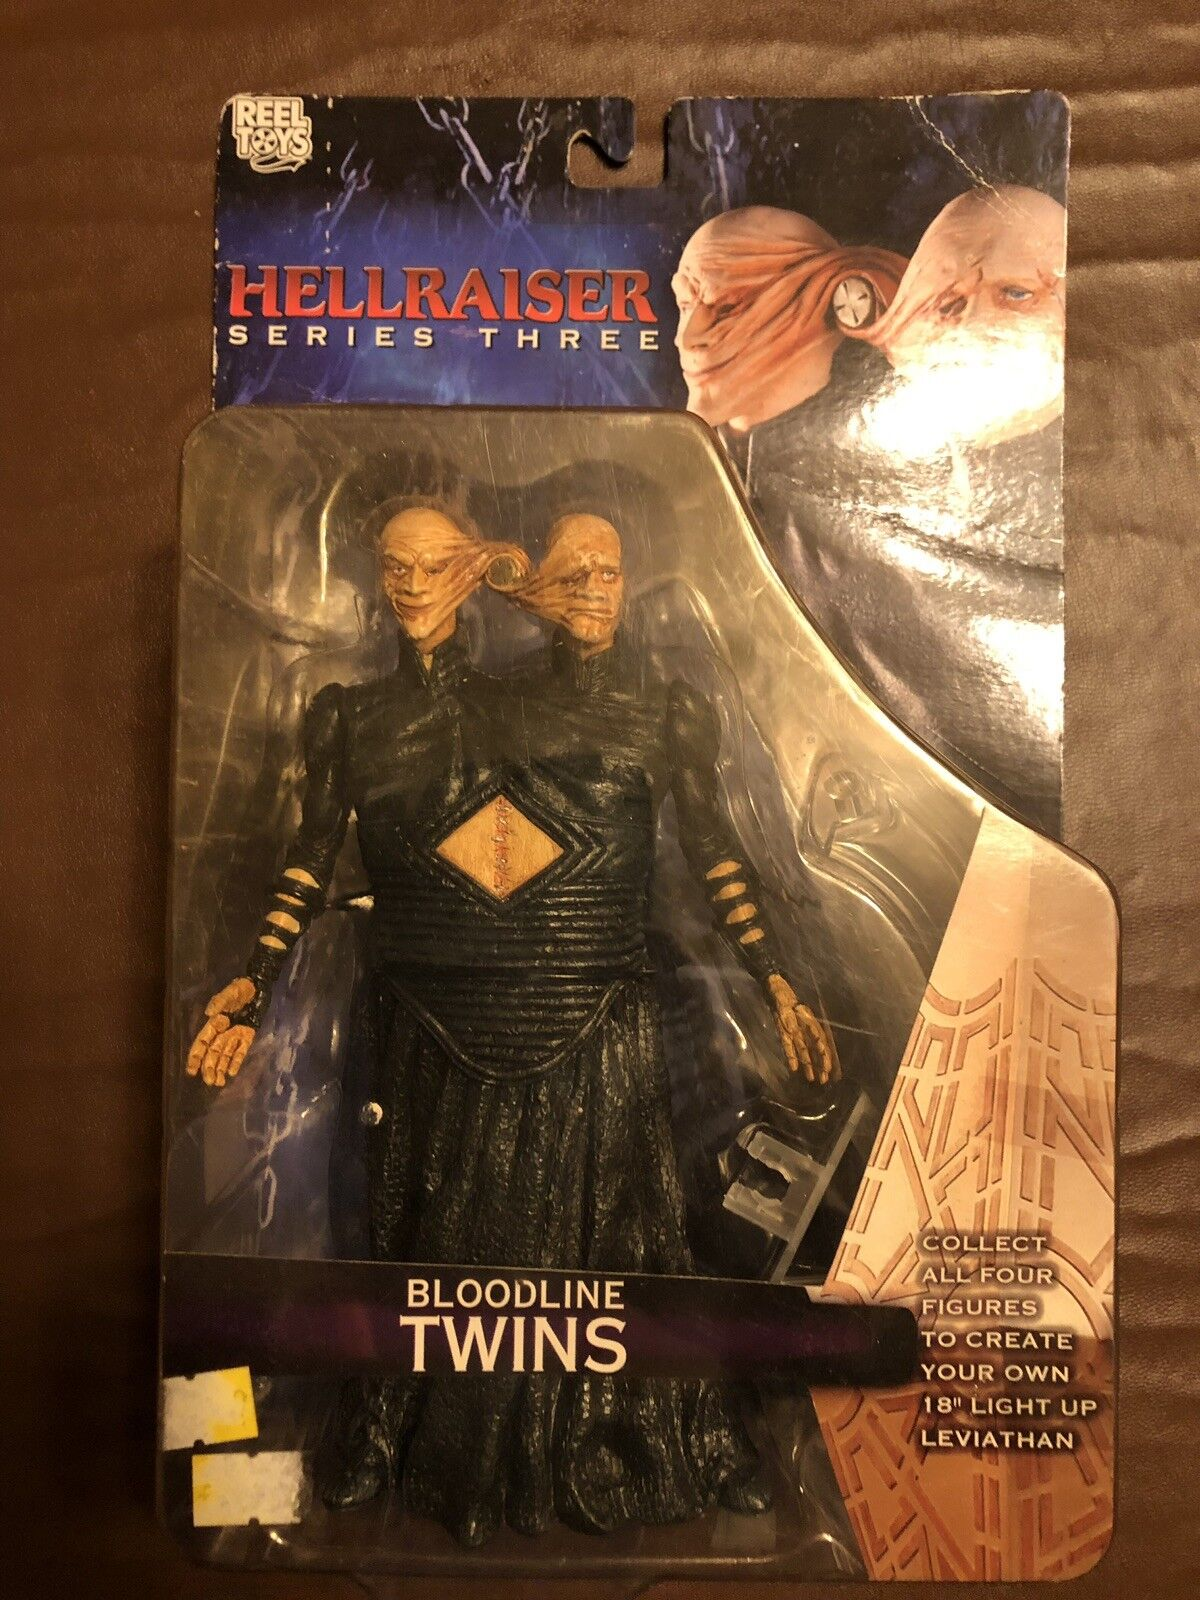 NECA Hellraiser Series 3 Bloodline Twins  AFHRS3 17